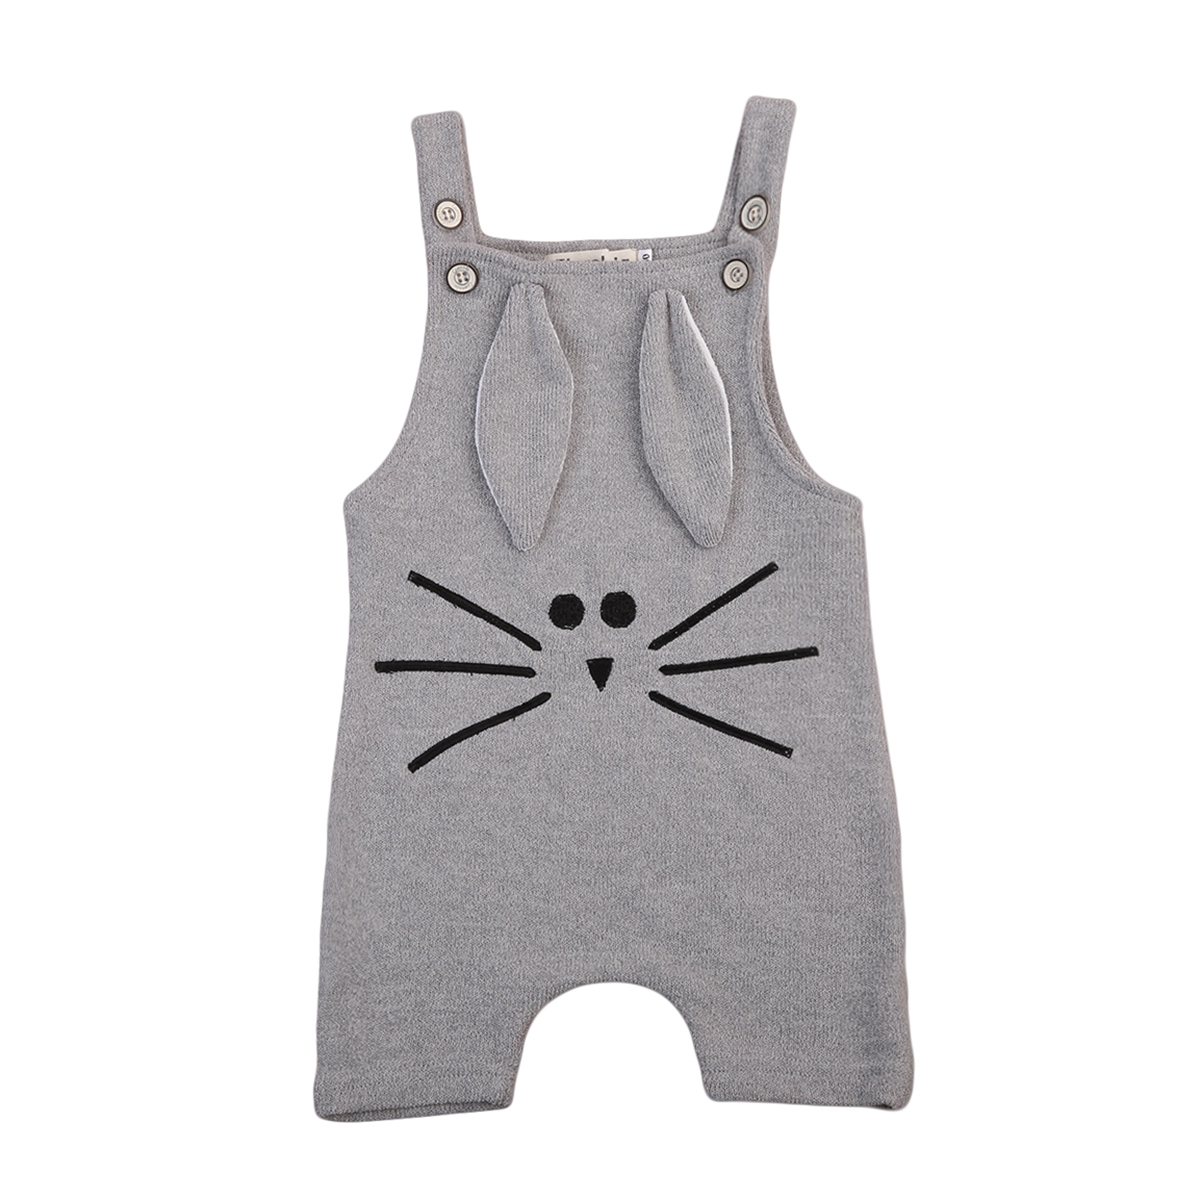 Newborn Infant Baby Boys Girls Cute Rabbit Printed Halter Romper One Piece Jumpsuit Clothes Outfit